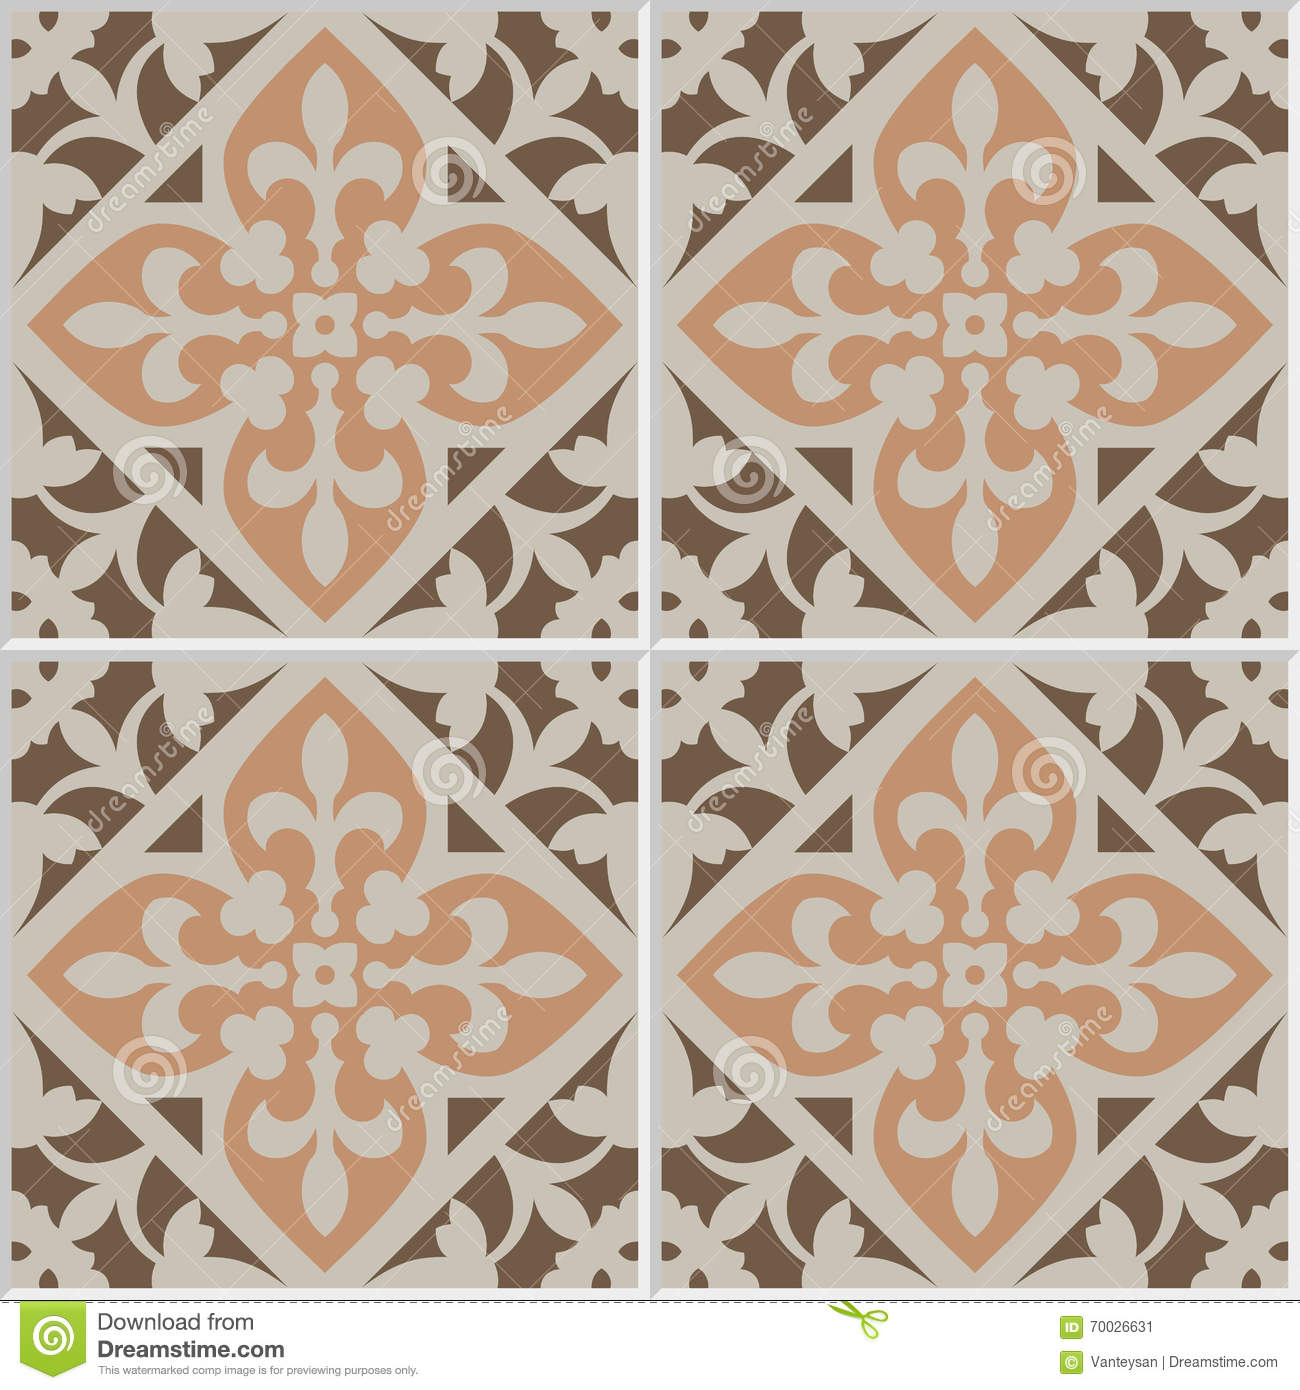 Vector tile mosaic floor stock photo image of pool floral 46726430 vintage ceramic mosaic floor tile seamless pattern stock image dailygadgetfo Choice Image